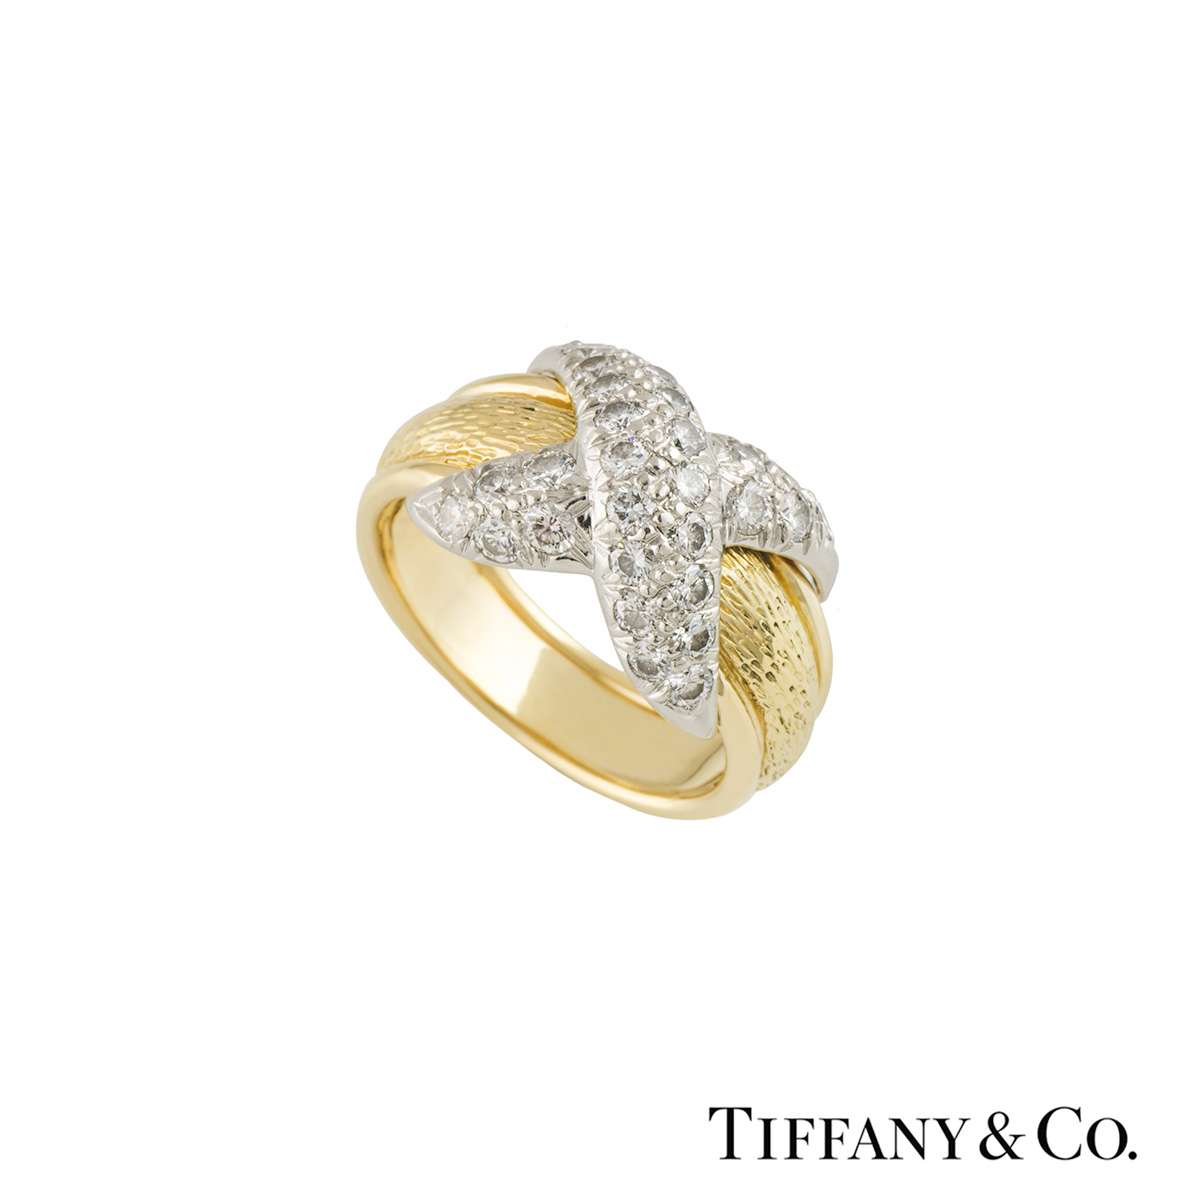 Tiffany & Co. Yellow Gold and Platinum Diamond Schlumberger Ring